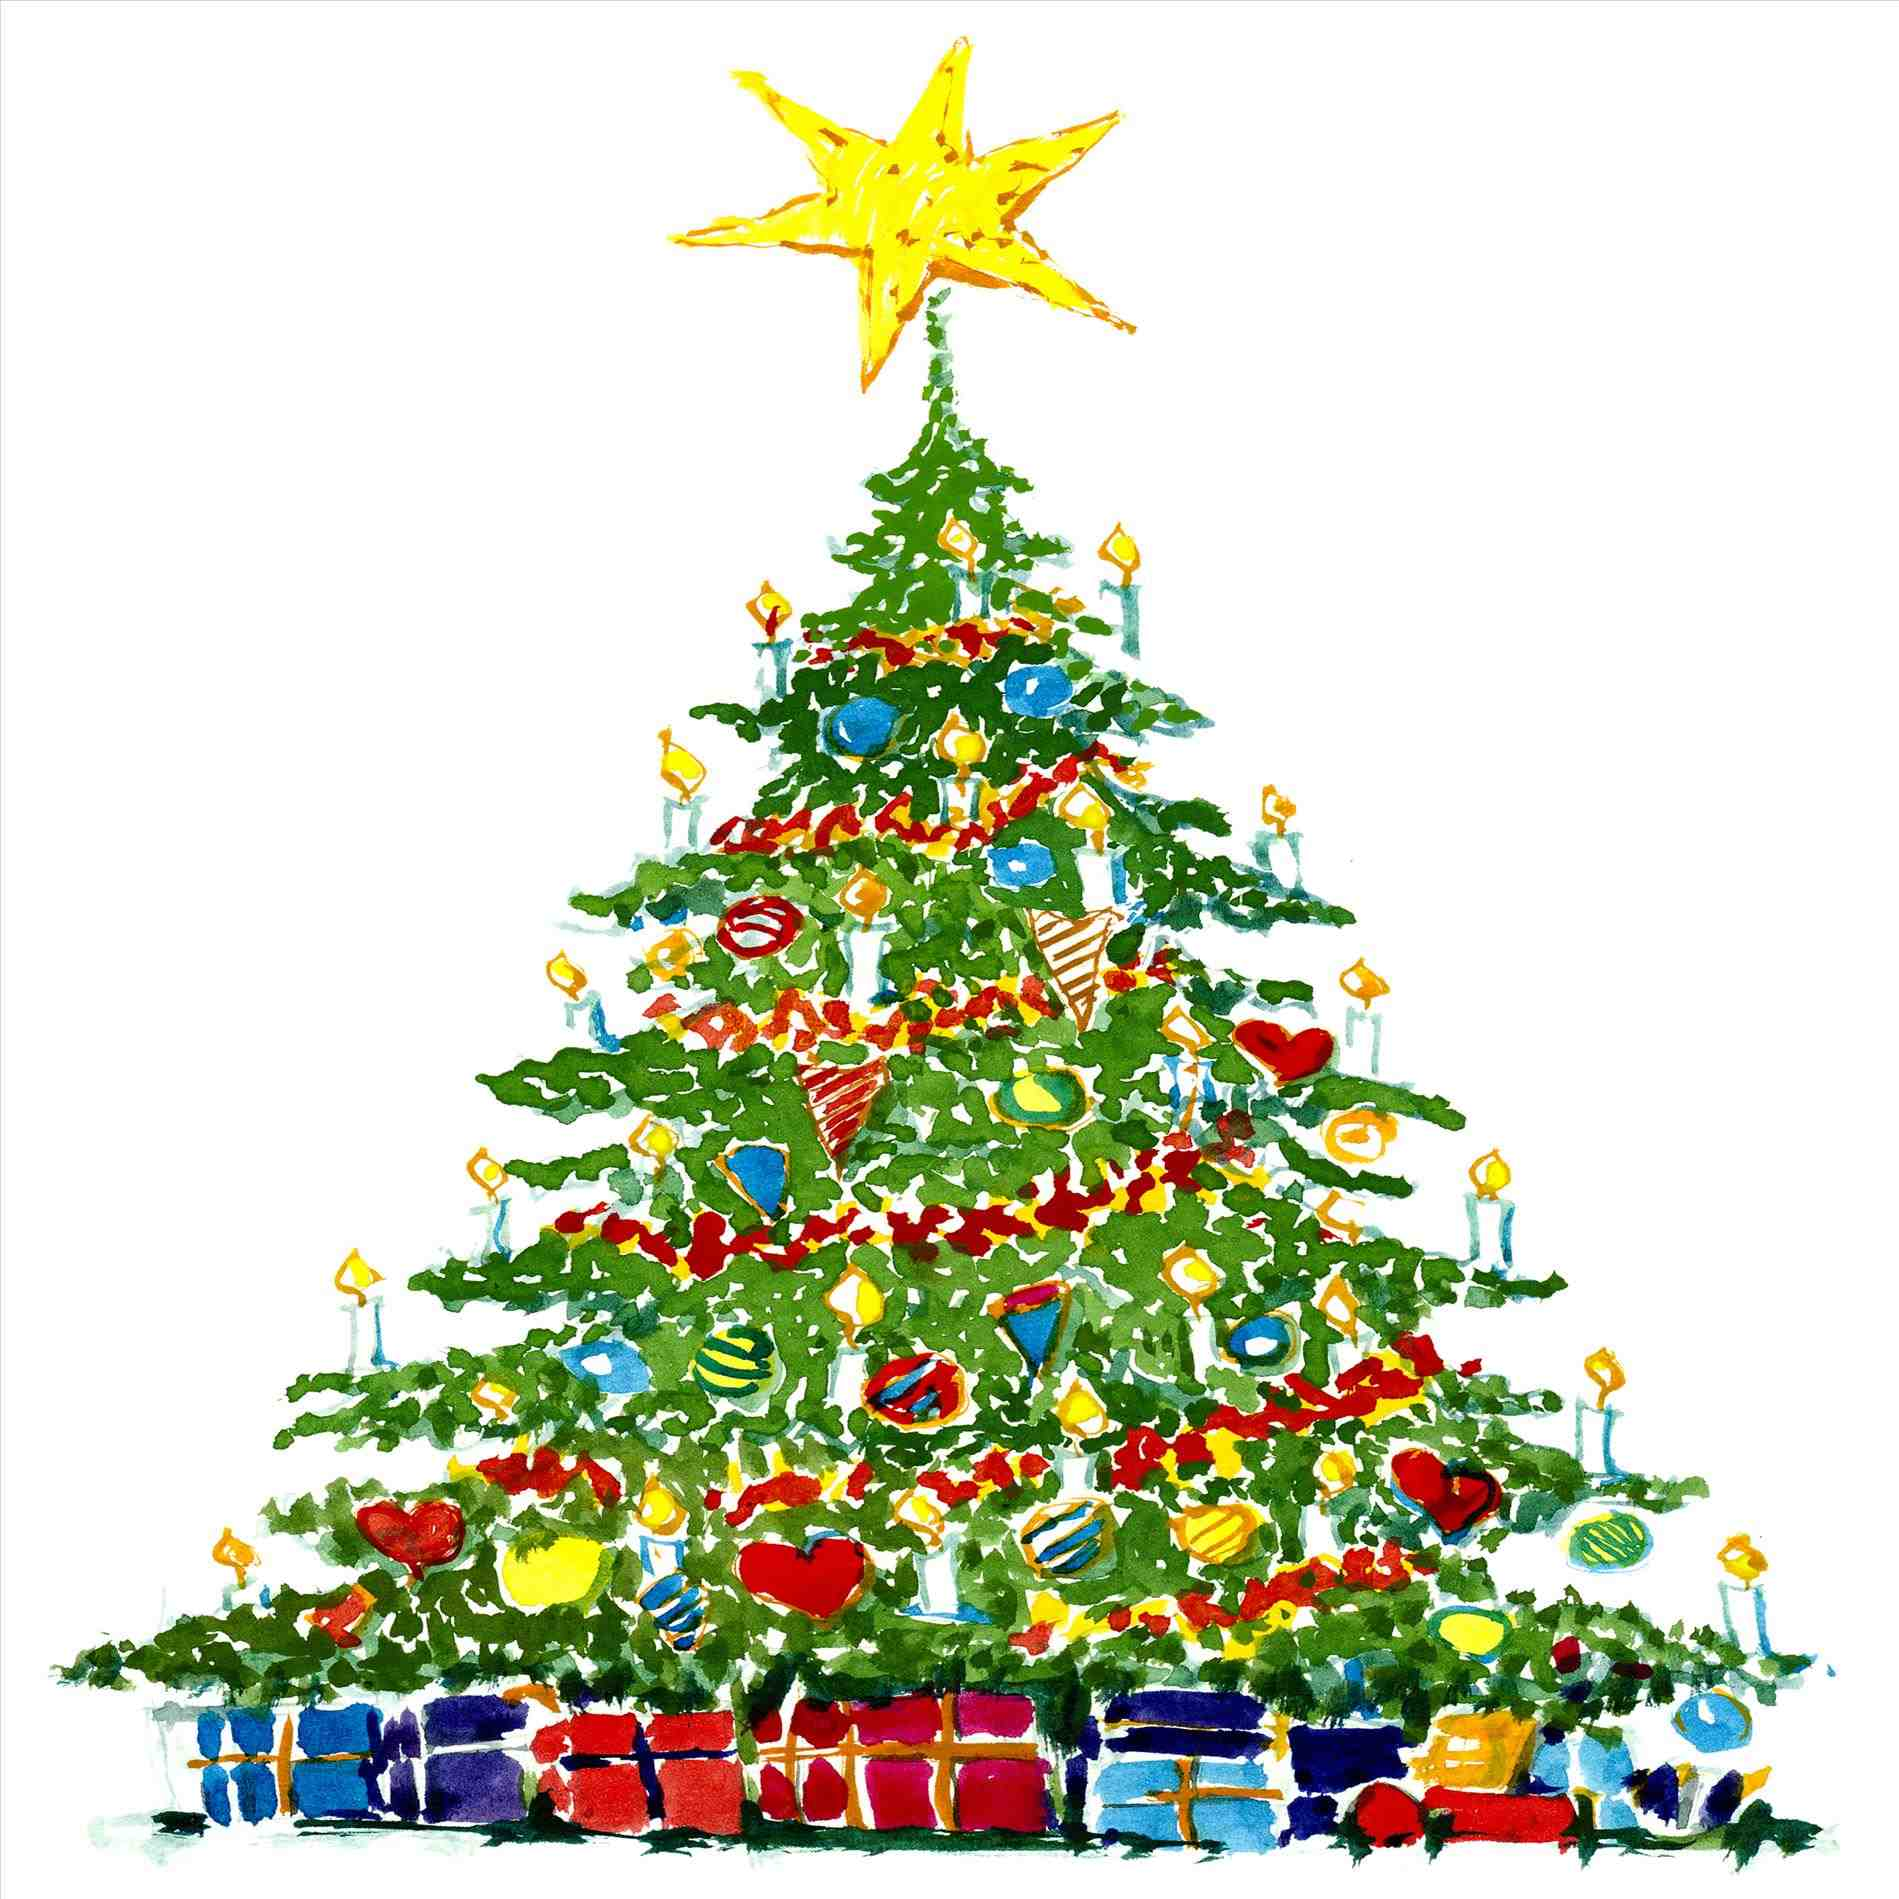 1899x1899 Christmas Tree Background Clipart Cheminee.website